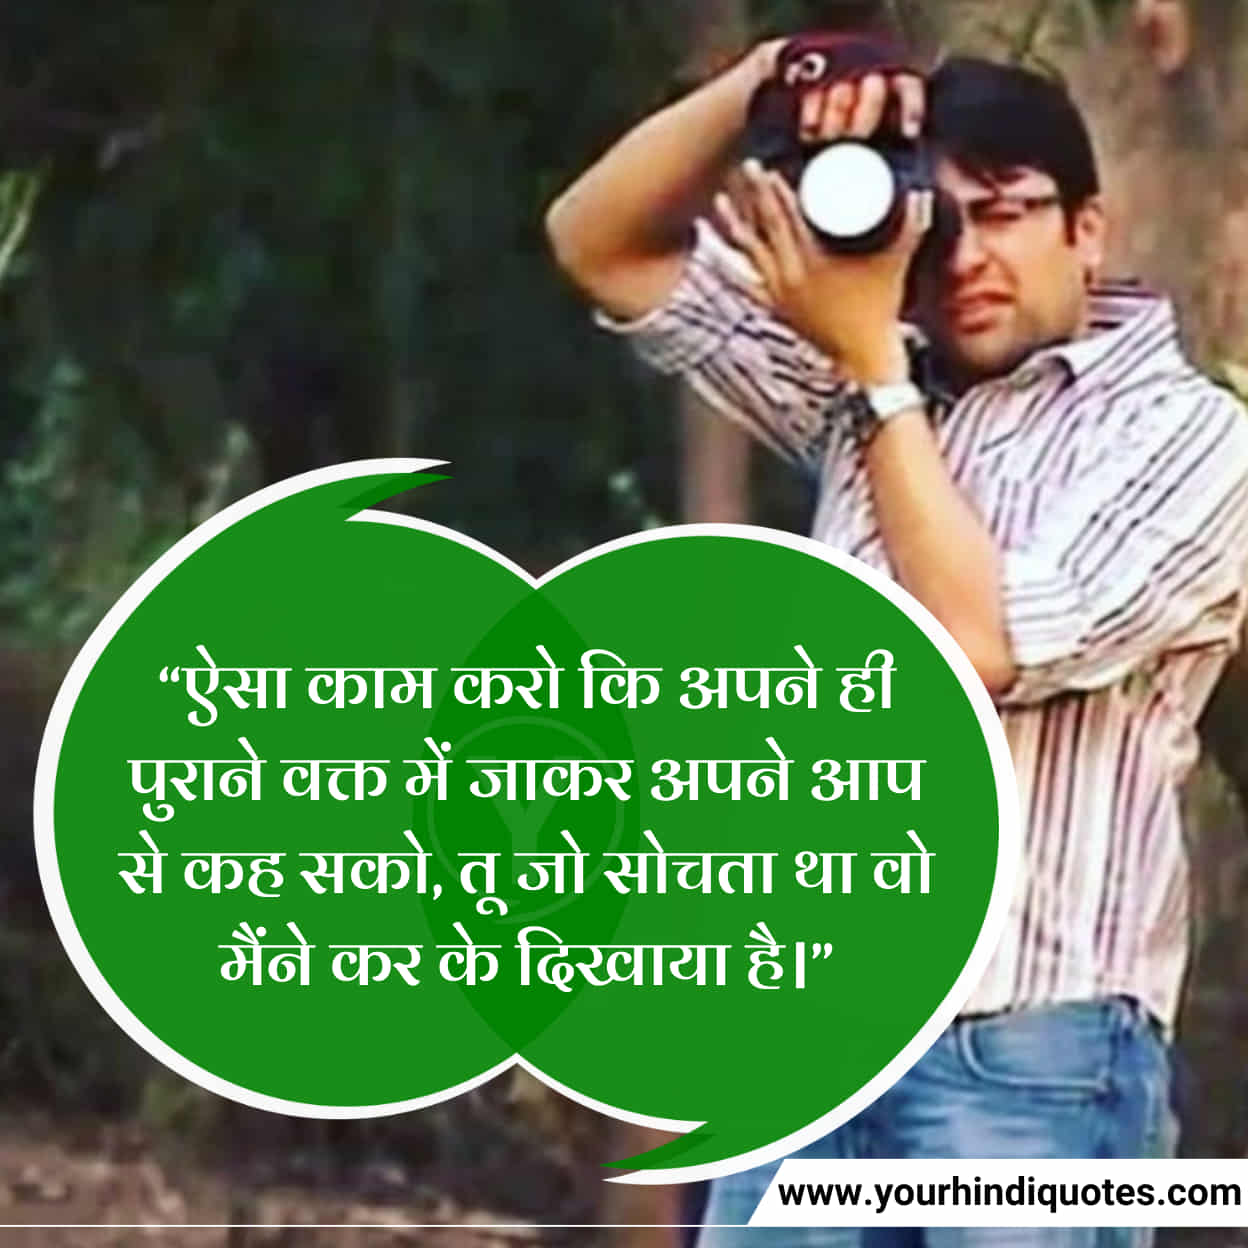 Positive Life Thoughts In Hindi